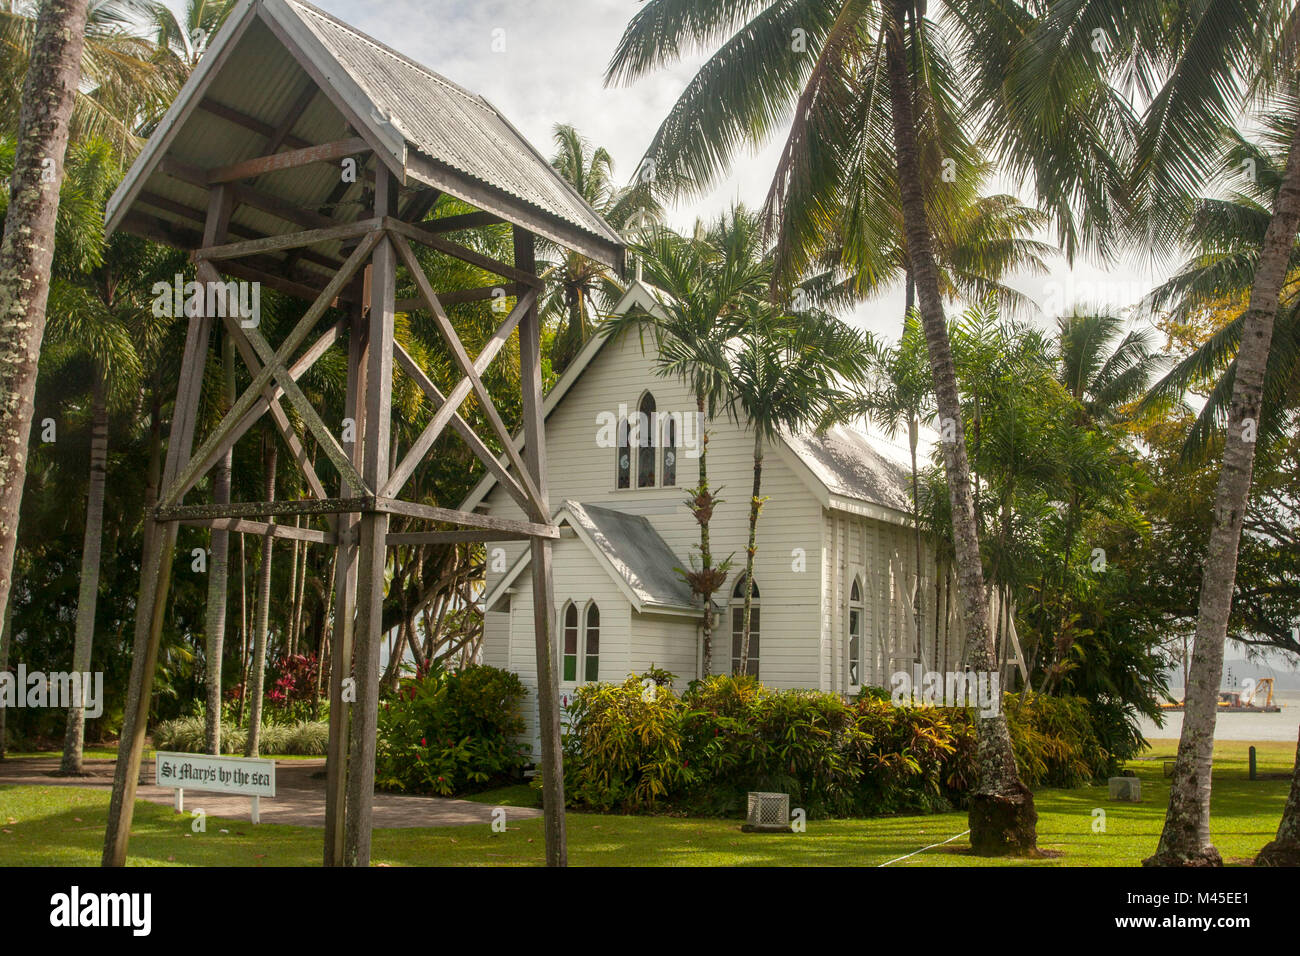 St Mary's by the Sea, heritage-listed non-denominational church in Port Douglas, Queensland, Australia Stock Photo